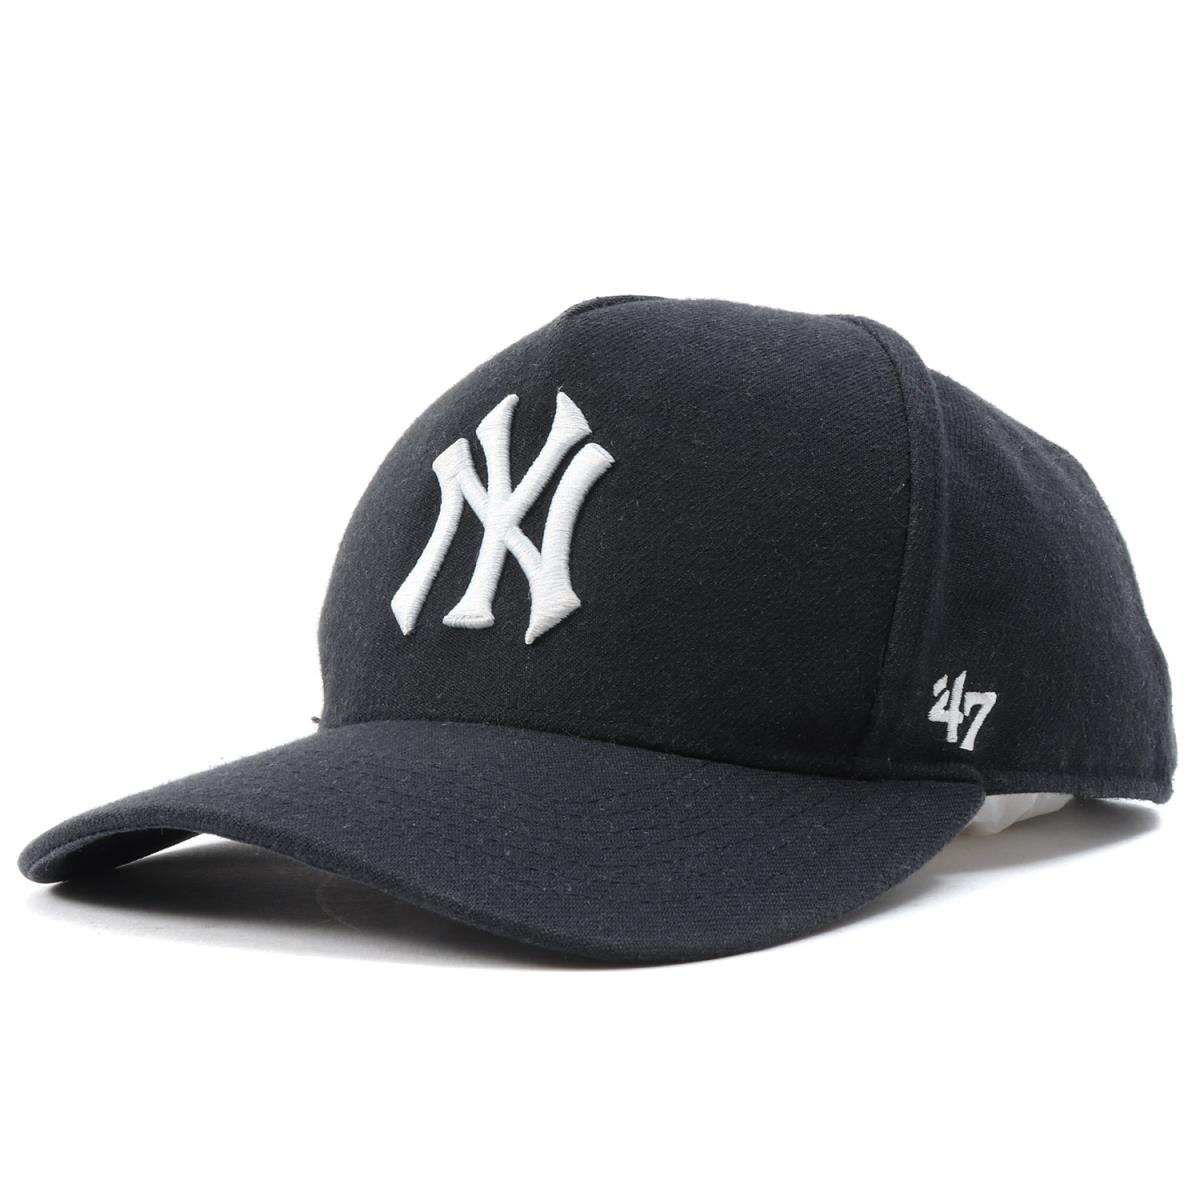 Supreme (シュプリーム) 15S S X New York Yankees NY logo 5 panel cap (47 Brand  5-Panel) navy 9d42d5a8282